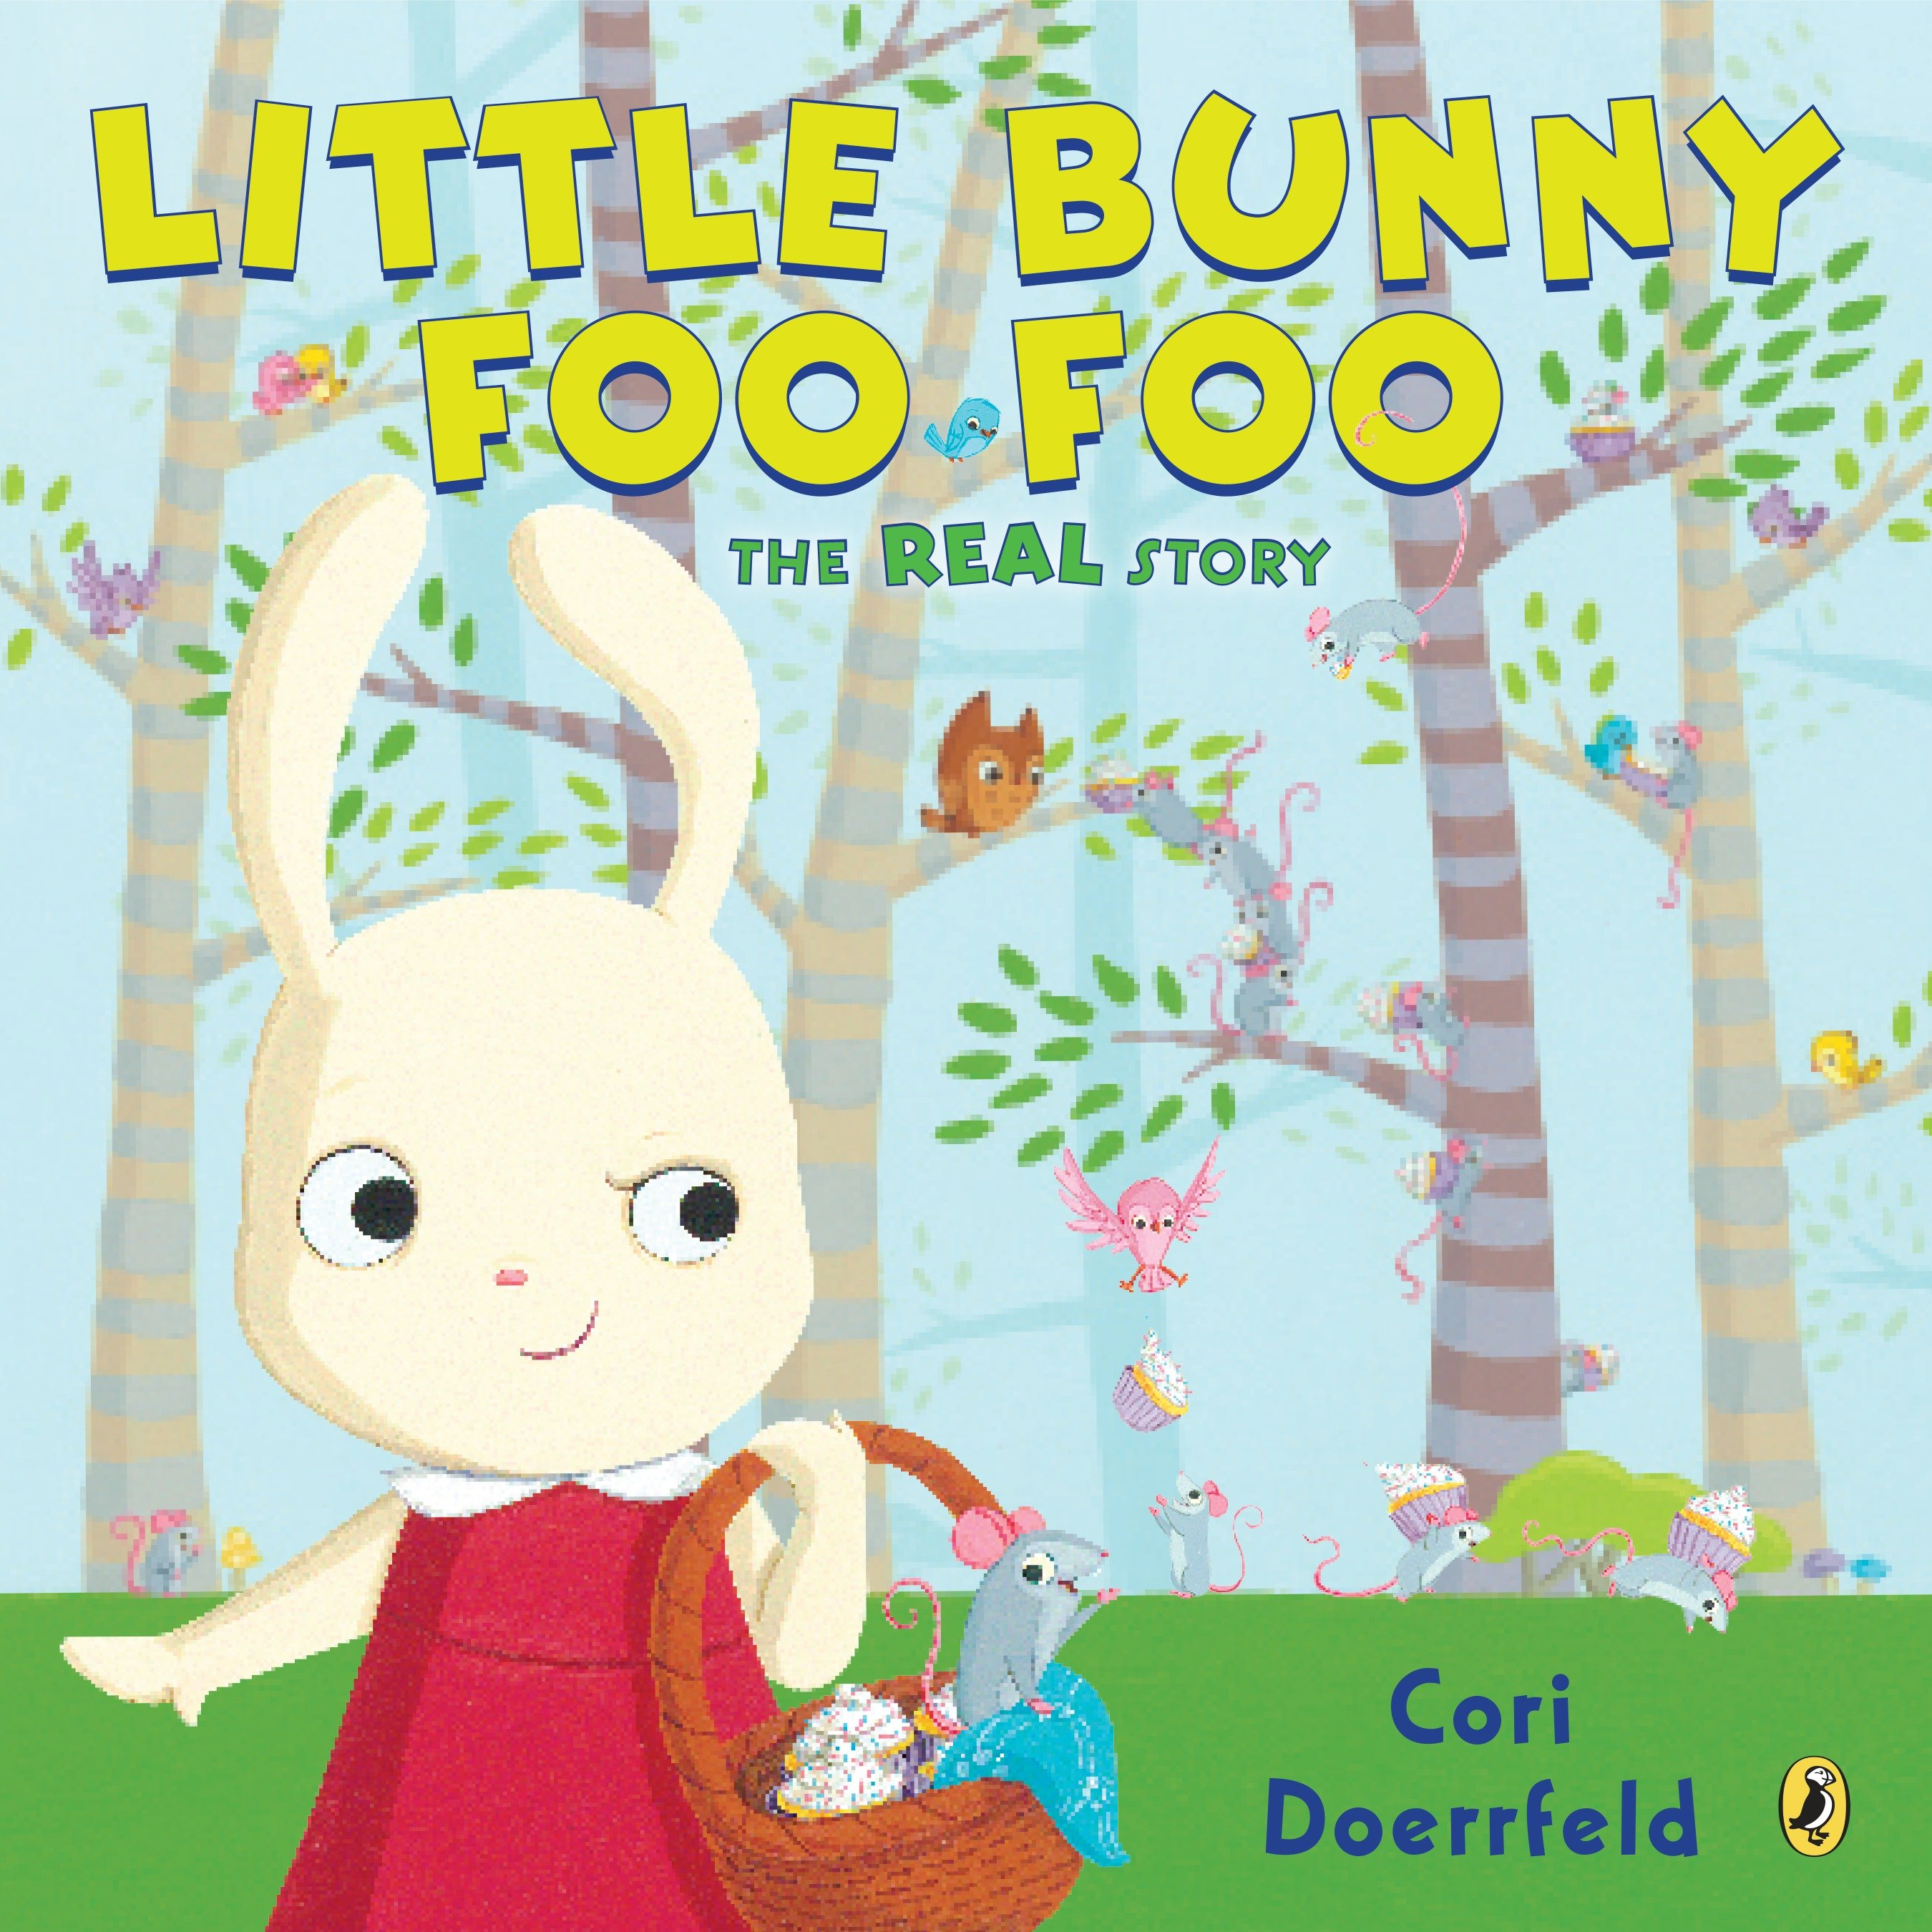 Little Bunny Foo Foo: The Real Story (Paperback)